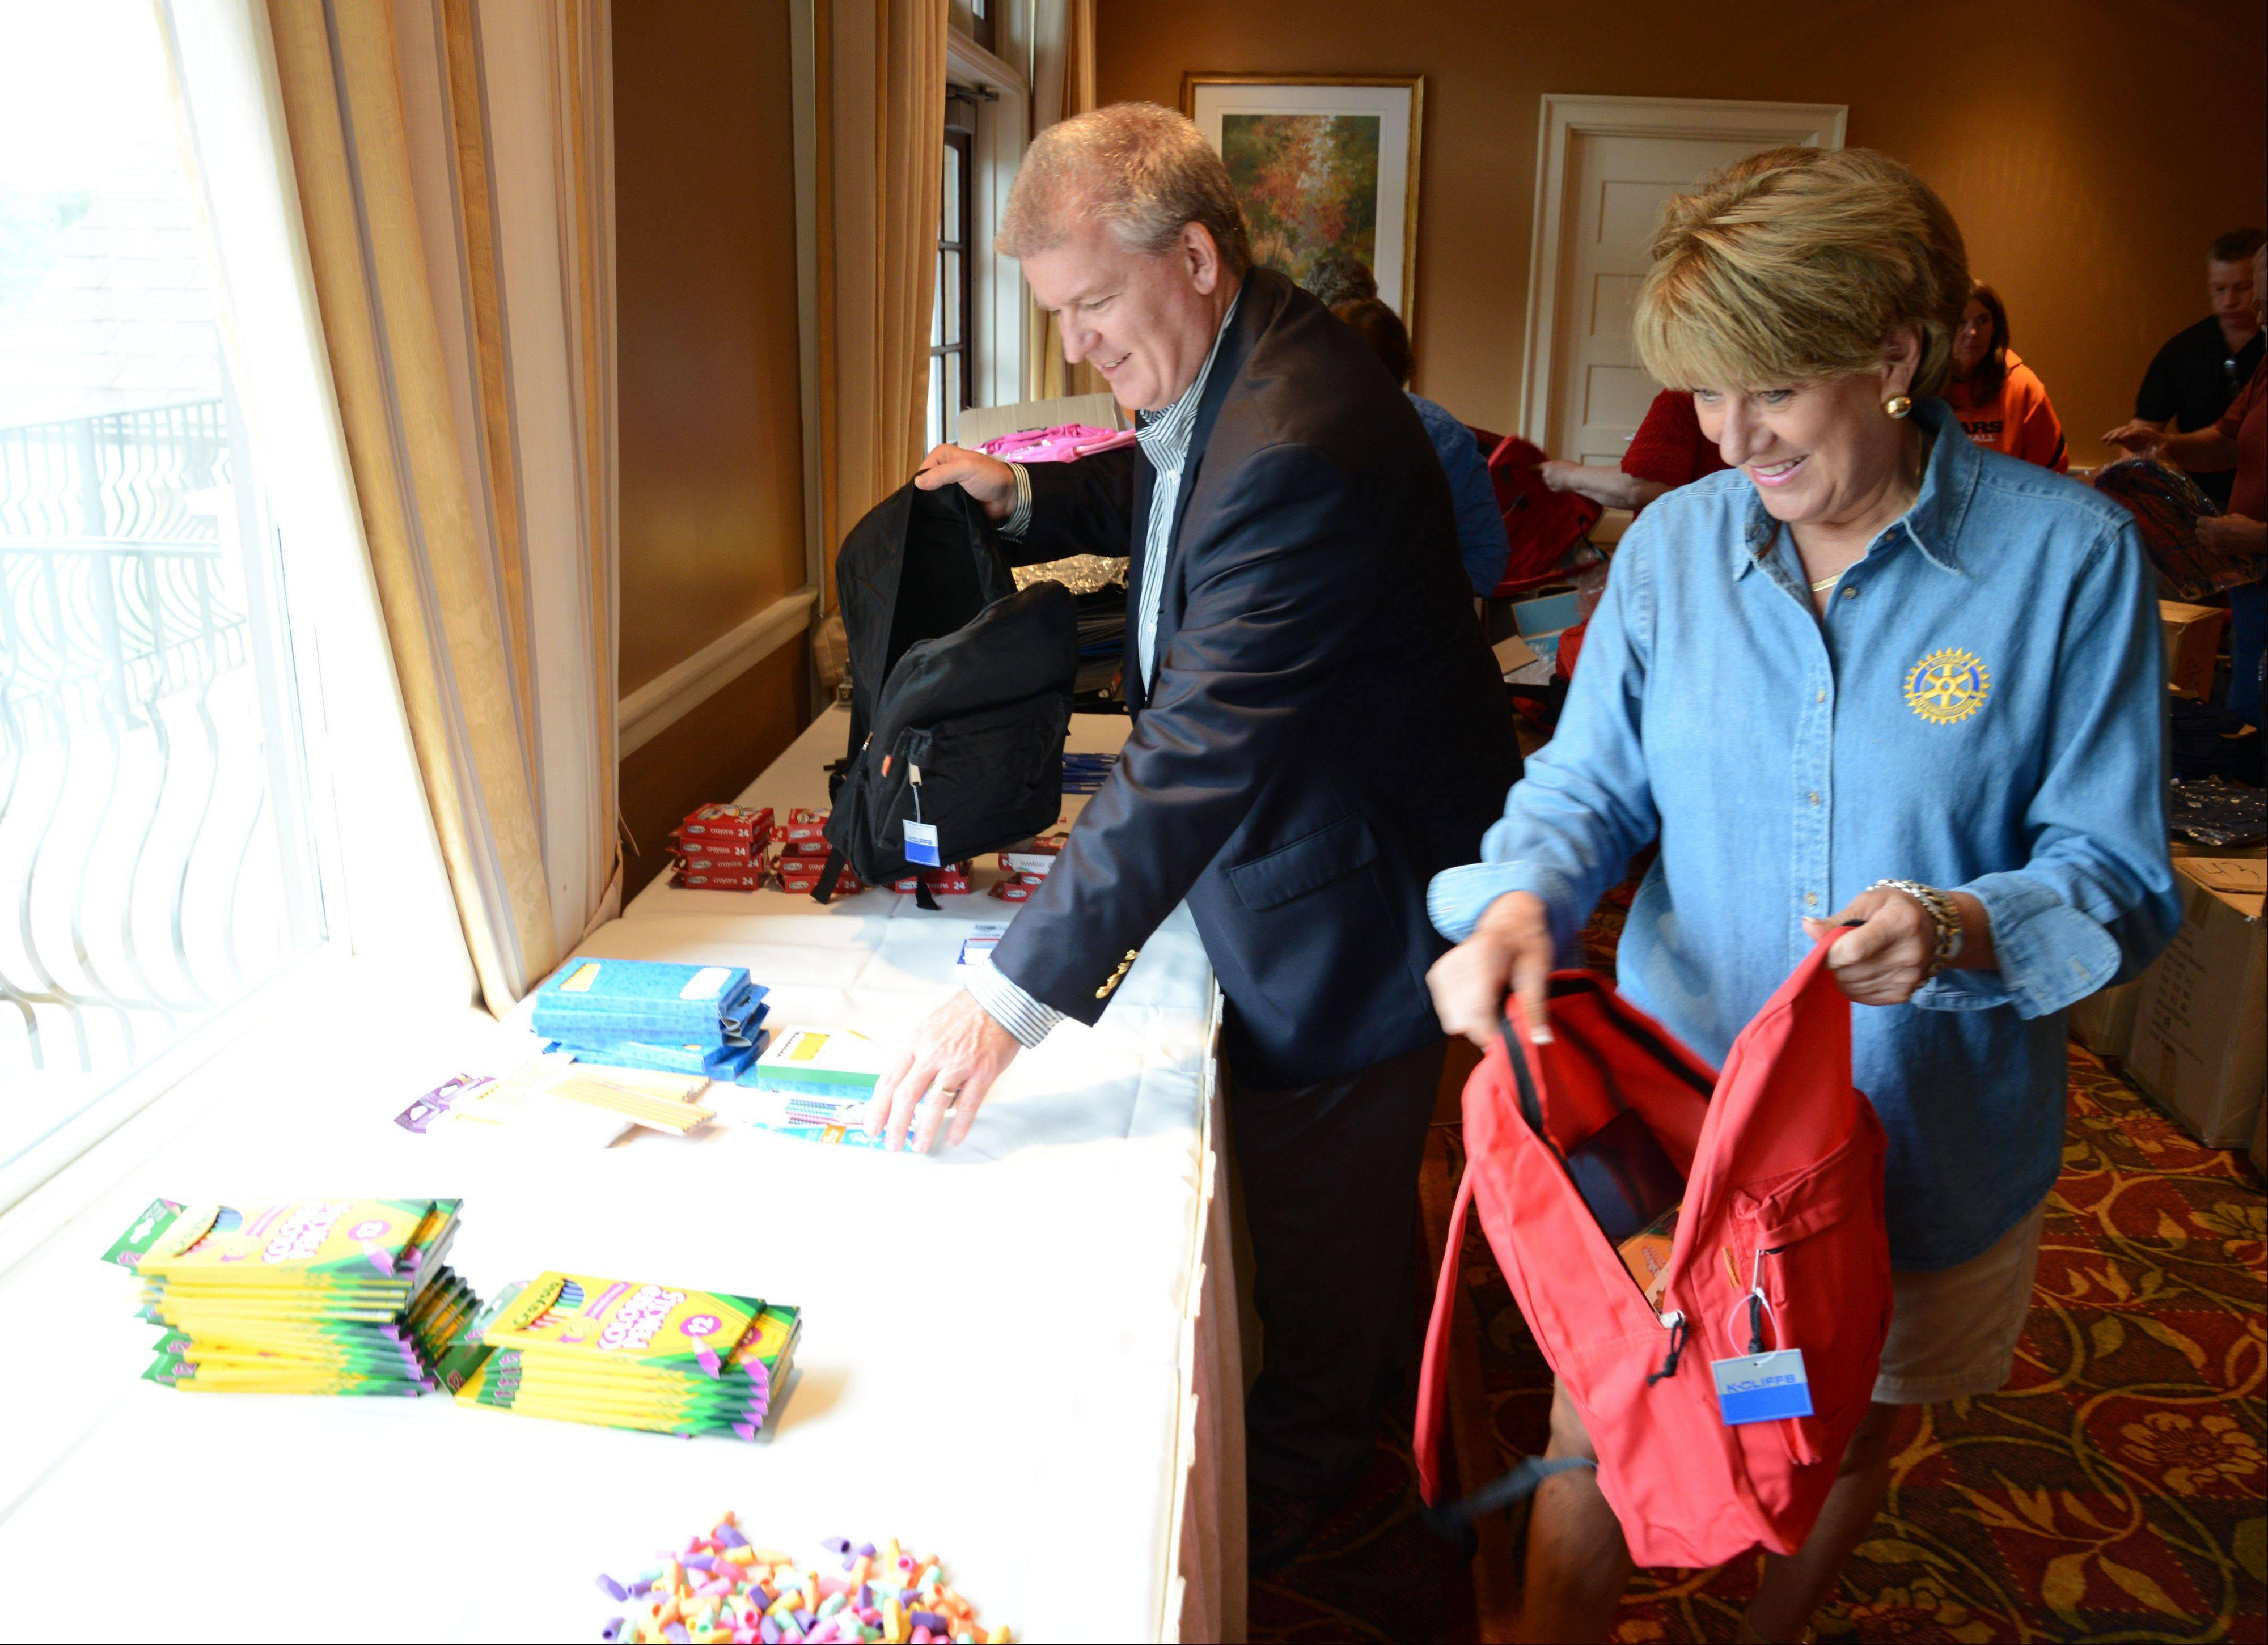 Brian Harris, superintendent of Wheaton Warrenville Unit District 200 and Lori Belha, Wheaton Rotary Club president, stuffed backpacks during the Wheaton Rotary Club's backpack stuffing event at Arrowhead Golf Course club house Thursday.